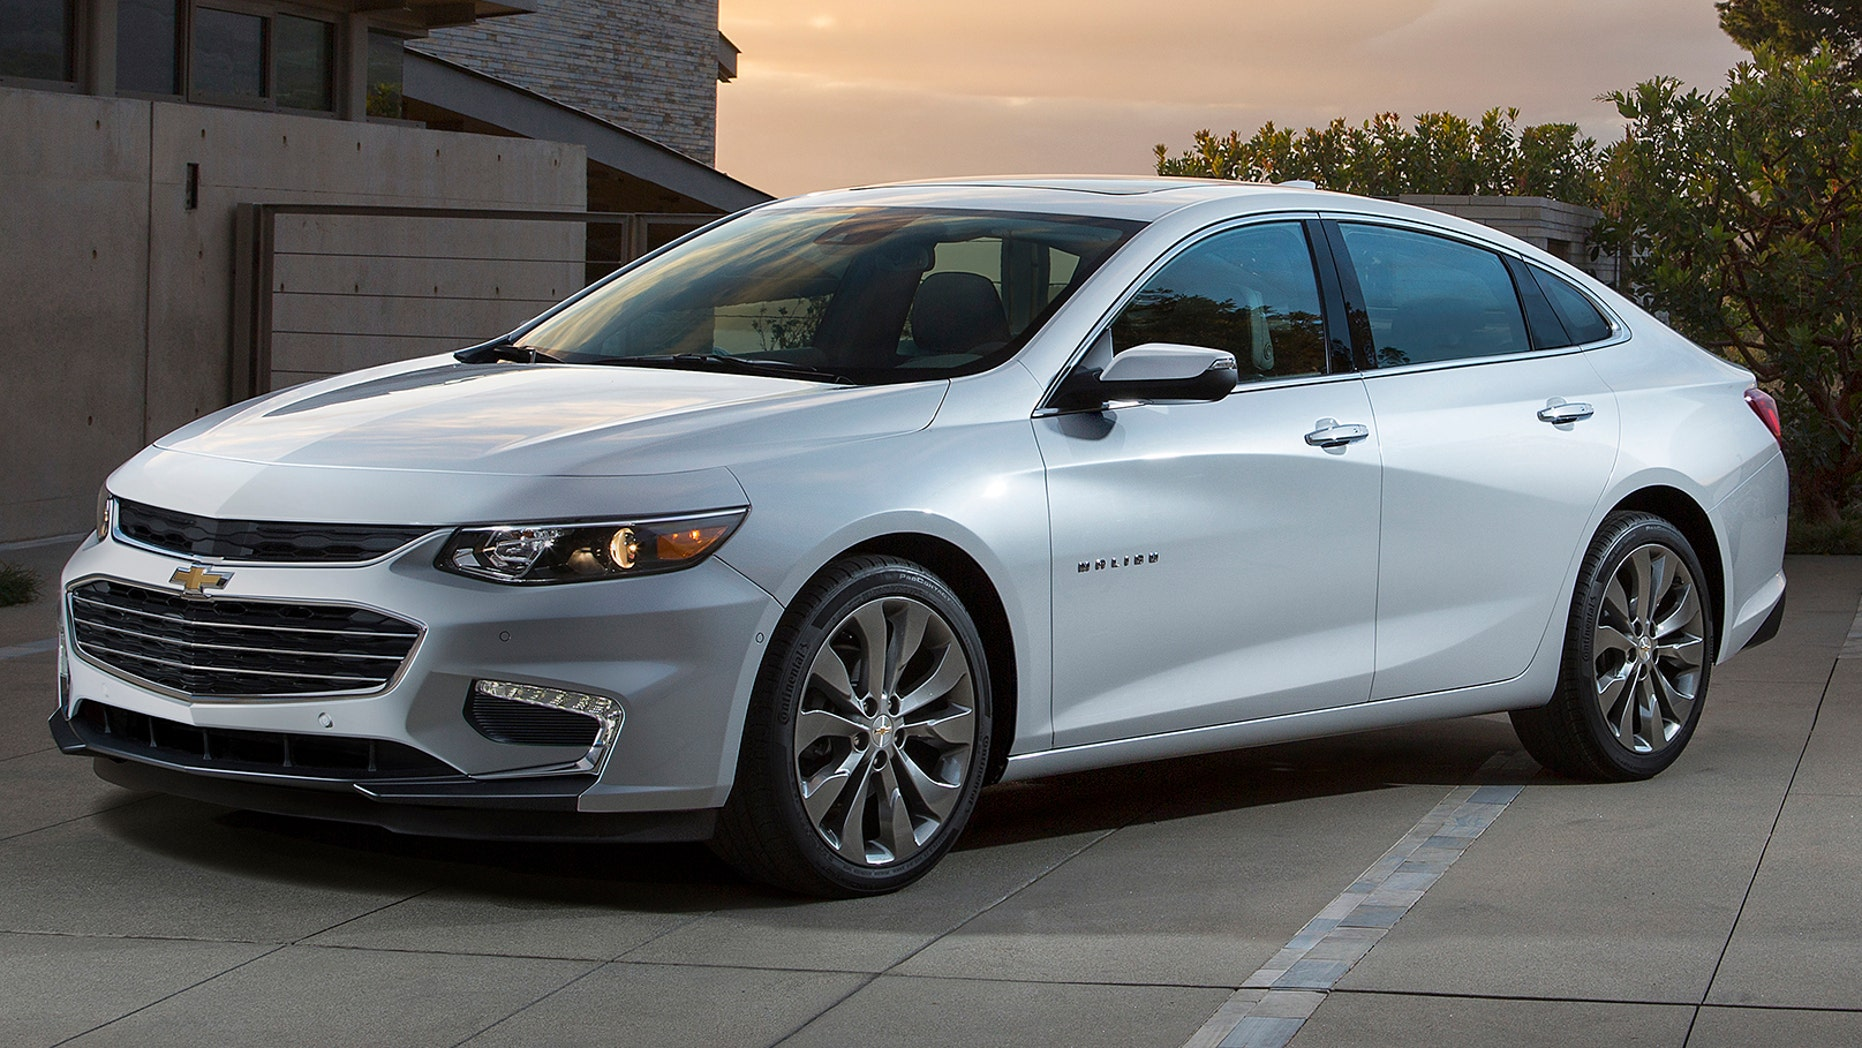 The 2016 Chevrolet Malibu is nearly 300 pounds lighter and has wheelbase thatâs been stretched nearly 4 inches, making it more fuel efficient, more functional and more agile.